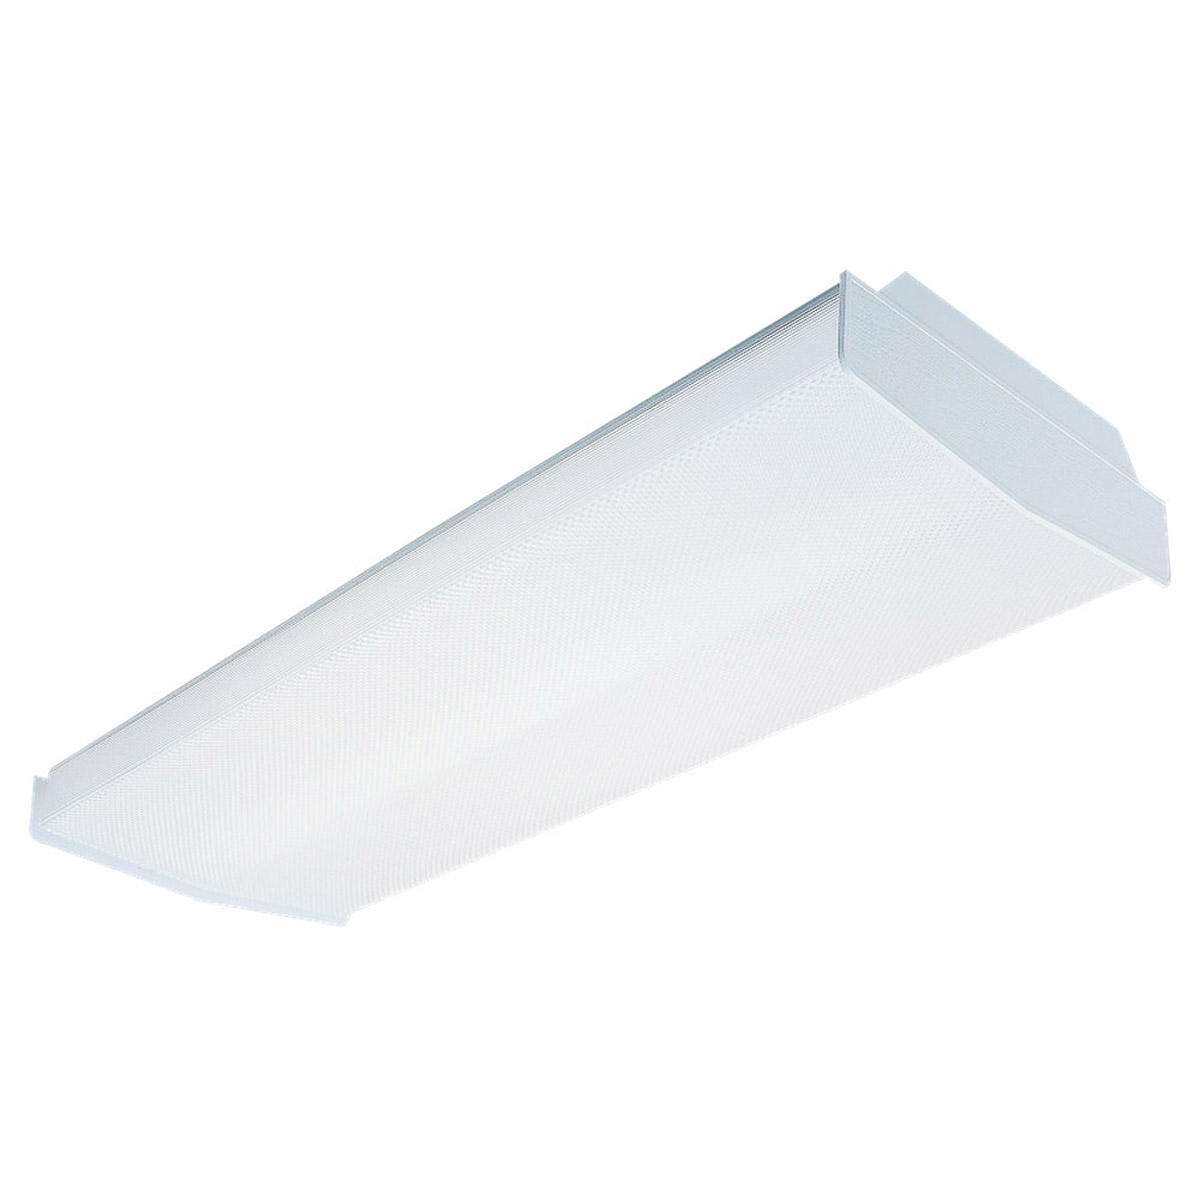 Sea Gull Lighting Averil 4 Light Fluorescent Flush Mount in White 5986LE-15